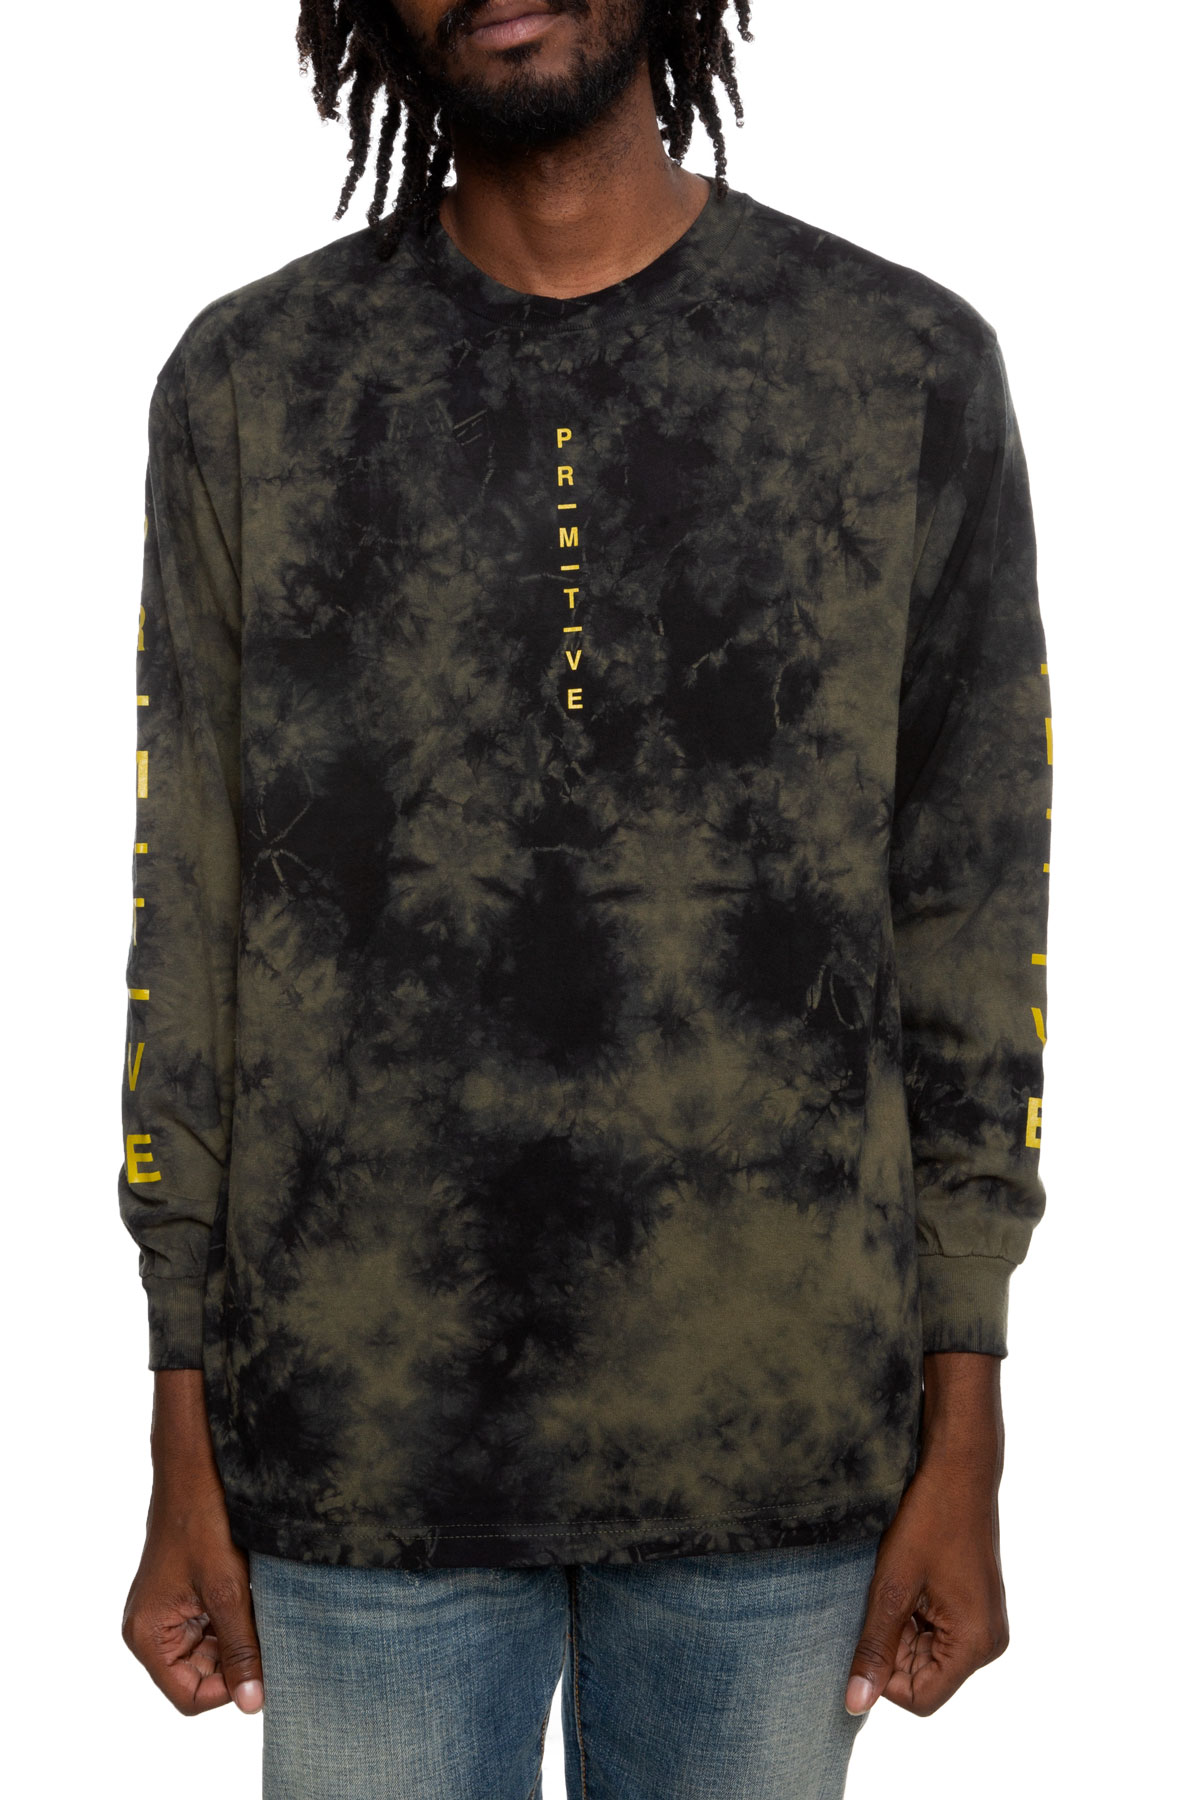 moods washed long sleeve tee in military green wash